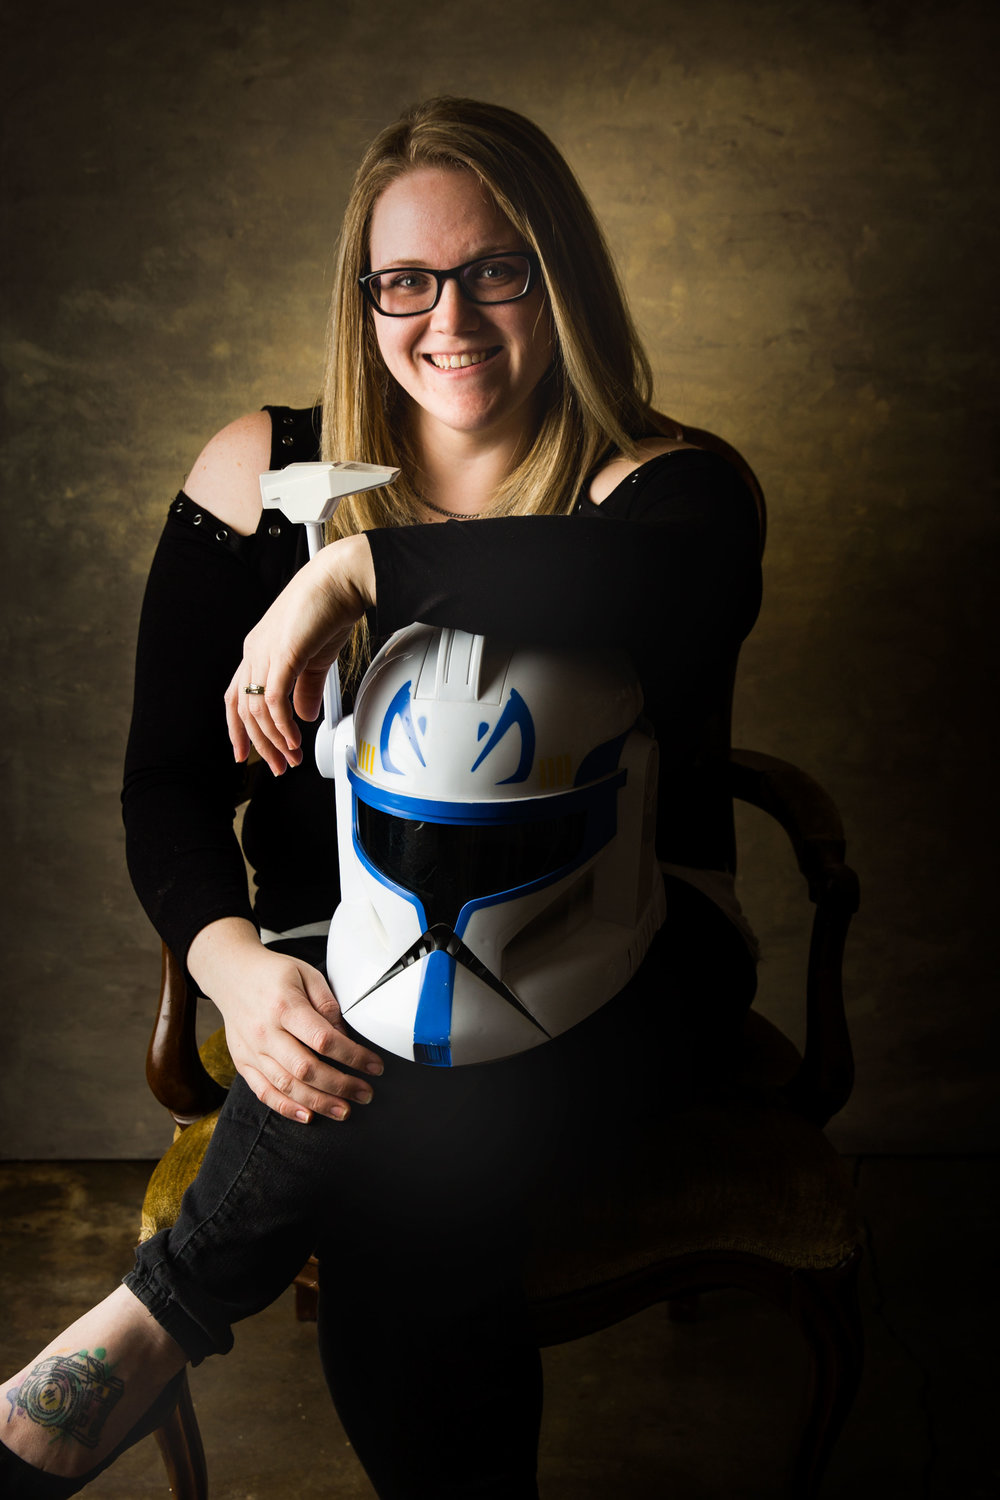 Star-Wars-helmet-bio-portrait-brittany-erwin-photography-wedding-photographer.jpg